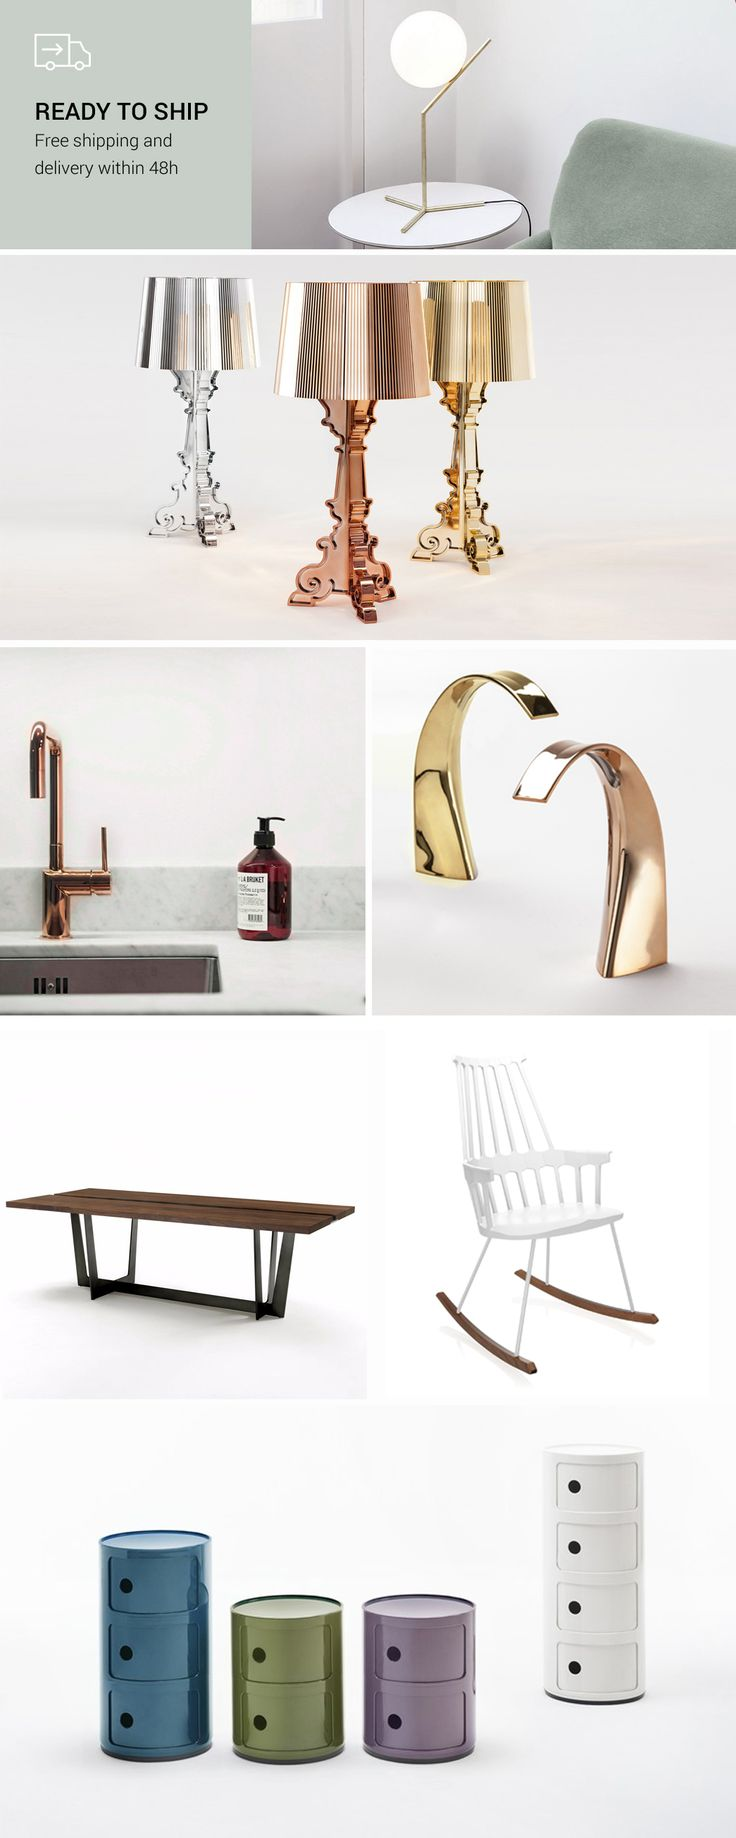 73 best images about archiproducts shop on pinterest for Archiproducts shop